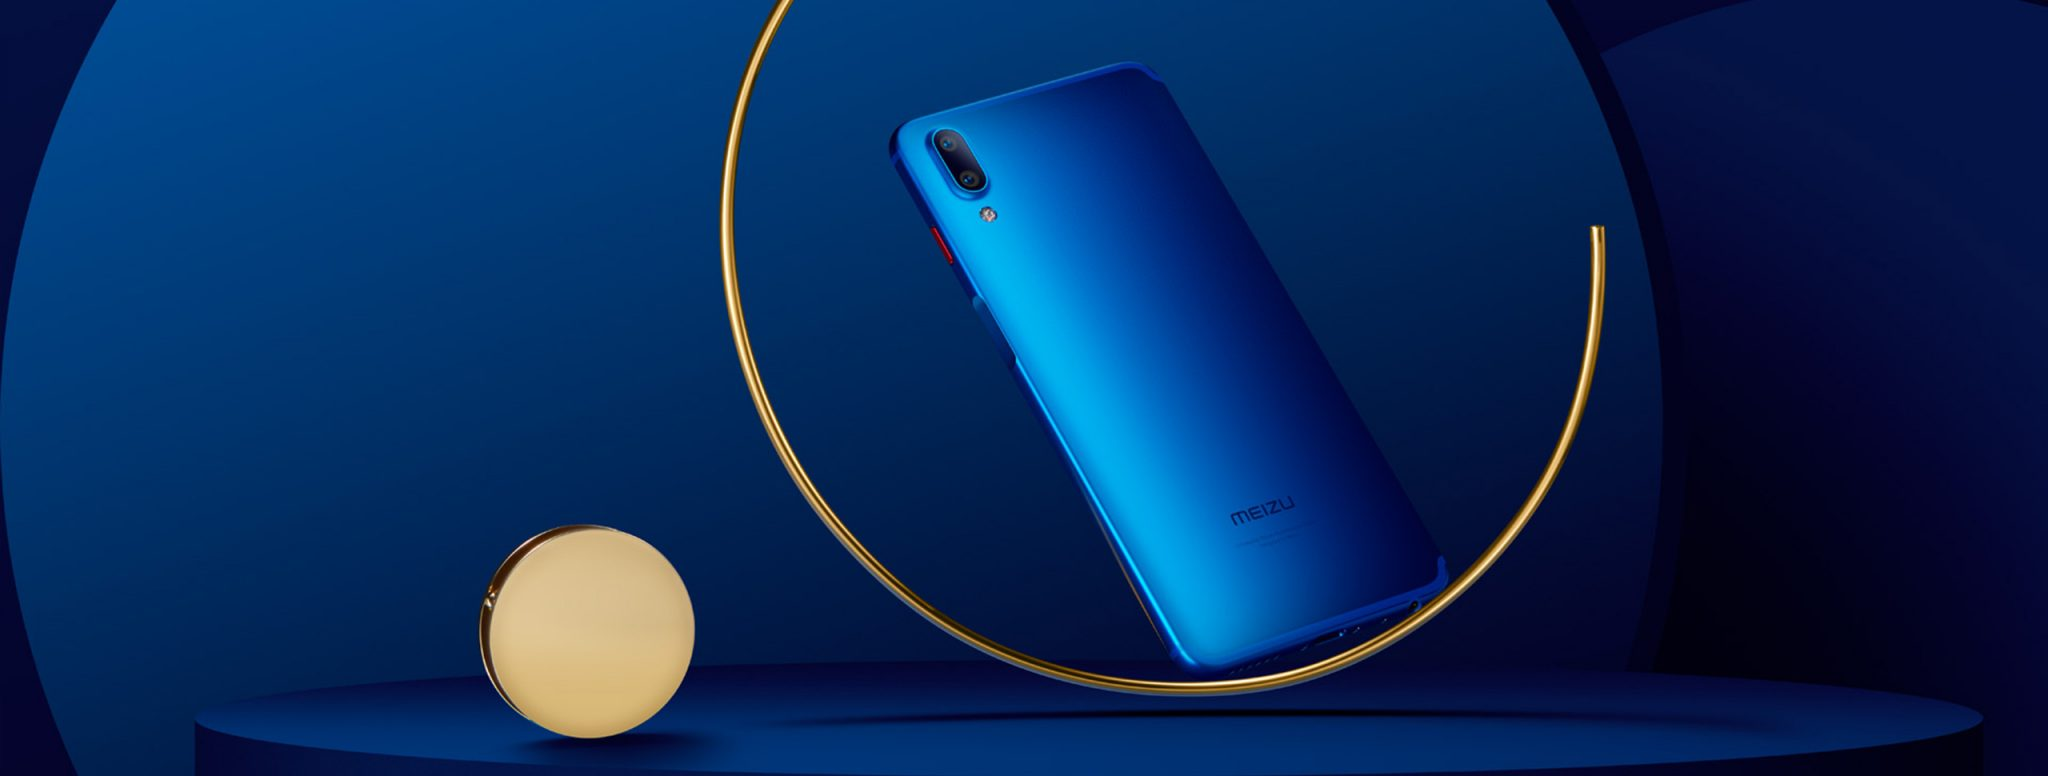 Meizu E3 is now official with Snapdragon 636 and 18:9 FHD+ display 7